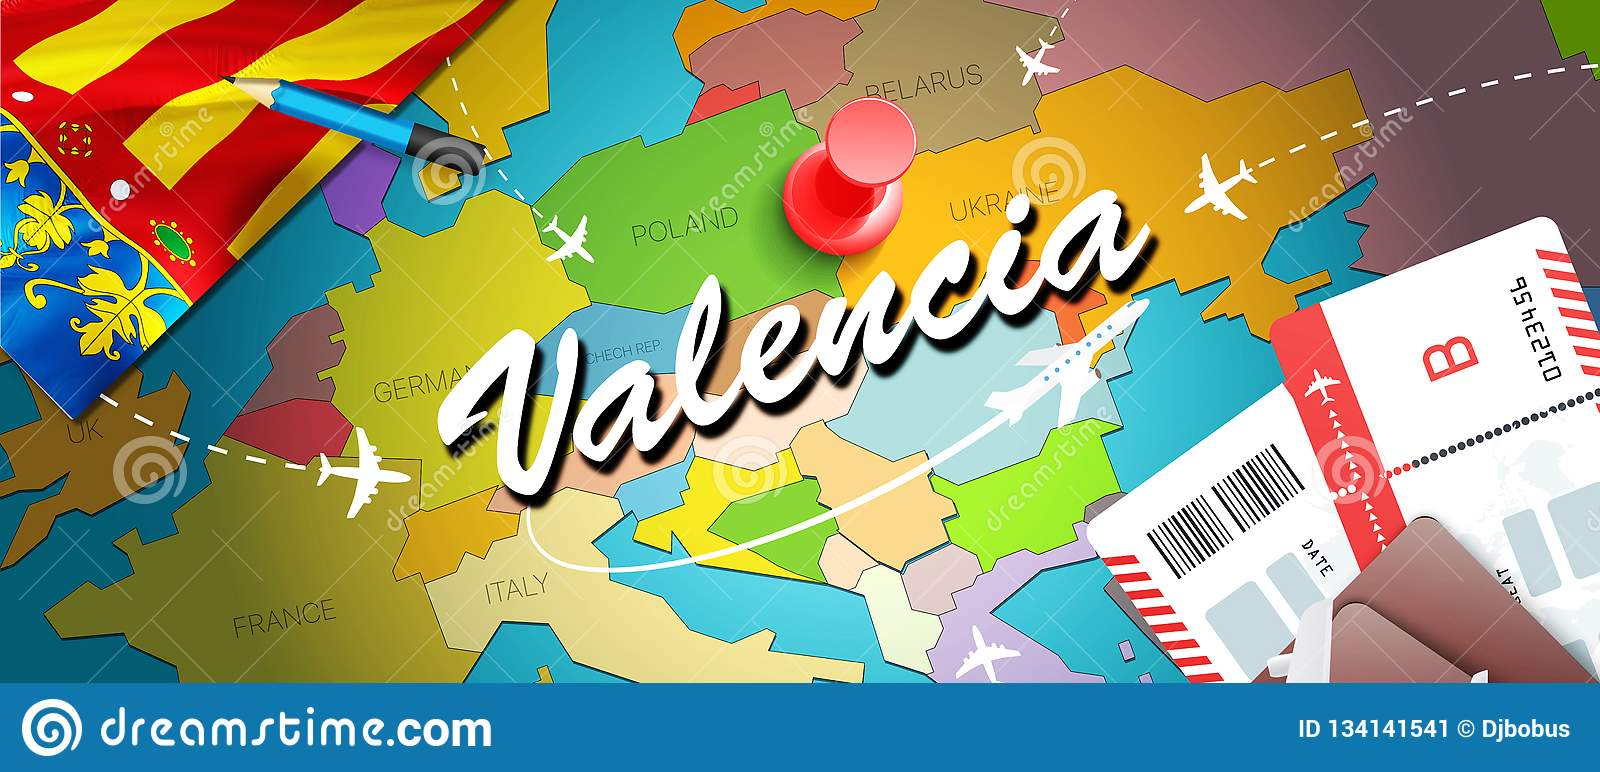 Map Of Spain Valencia.Valencia Travel Concept Map Background With Planes Tickets Visit